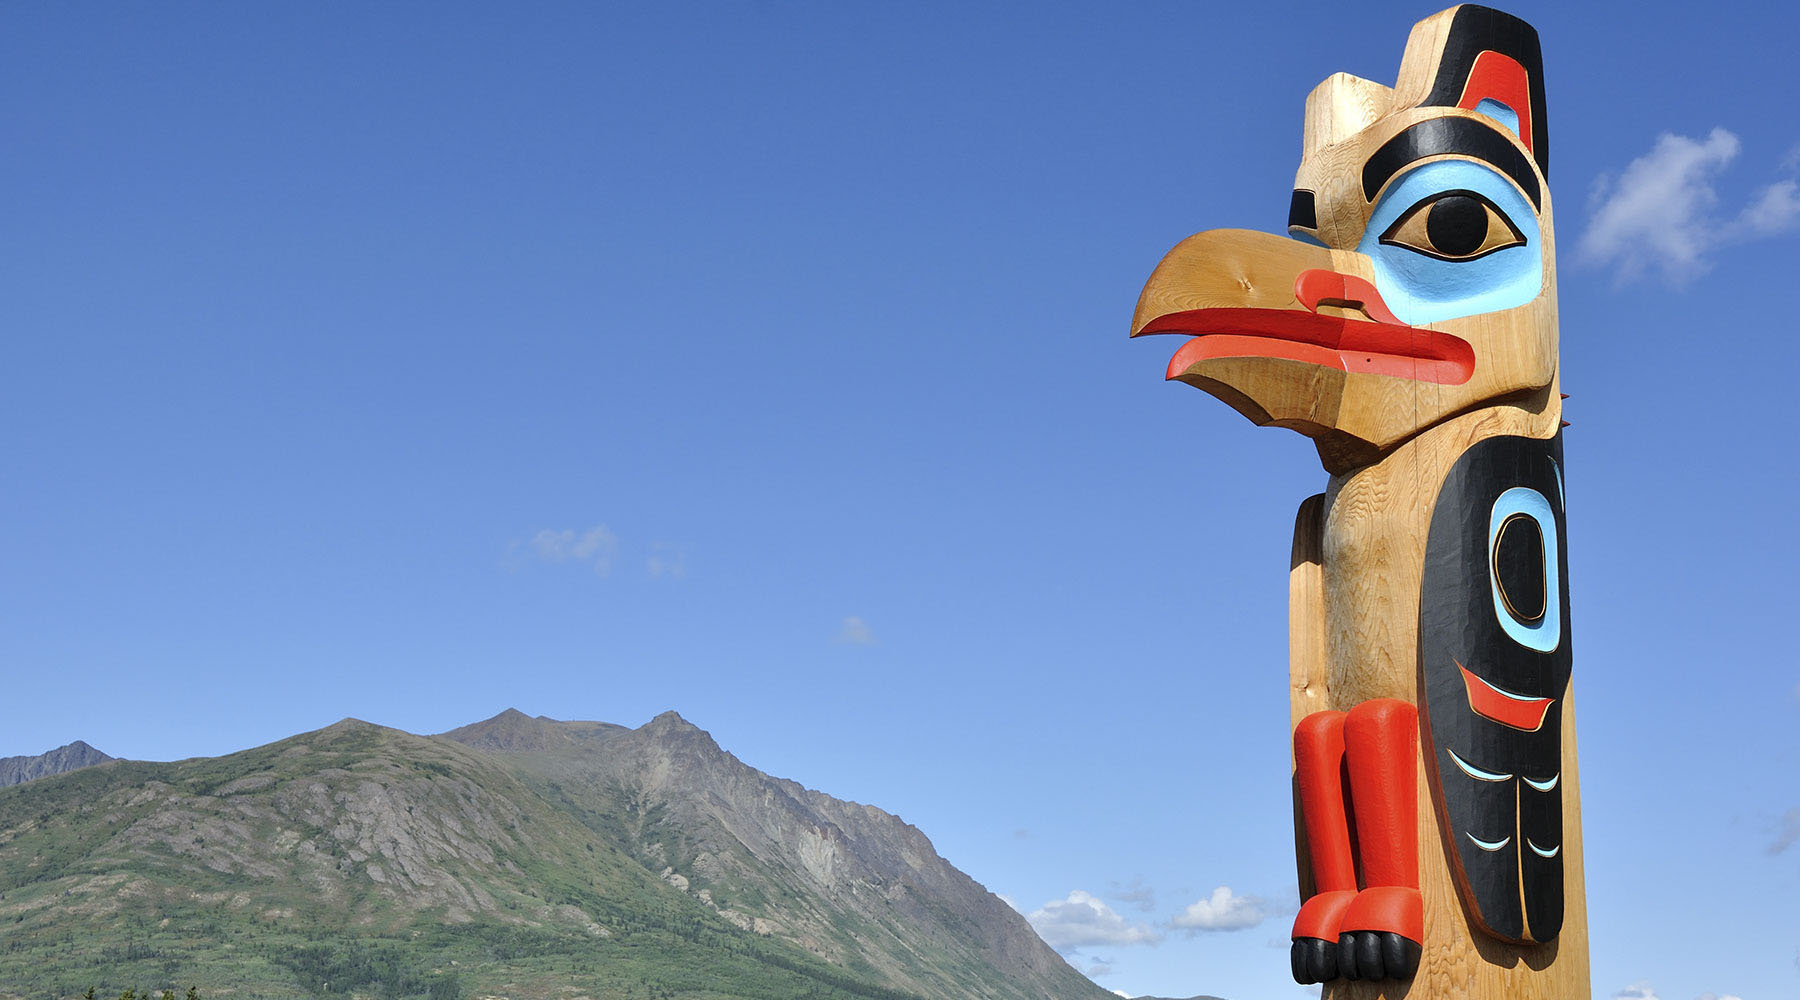 10-NIGHT ALASKA VOYAGE & 4-NIGHT PRE ALASKA PKG 1B